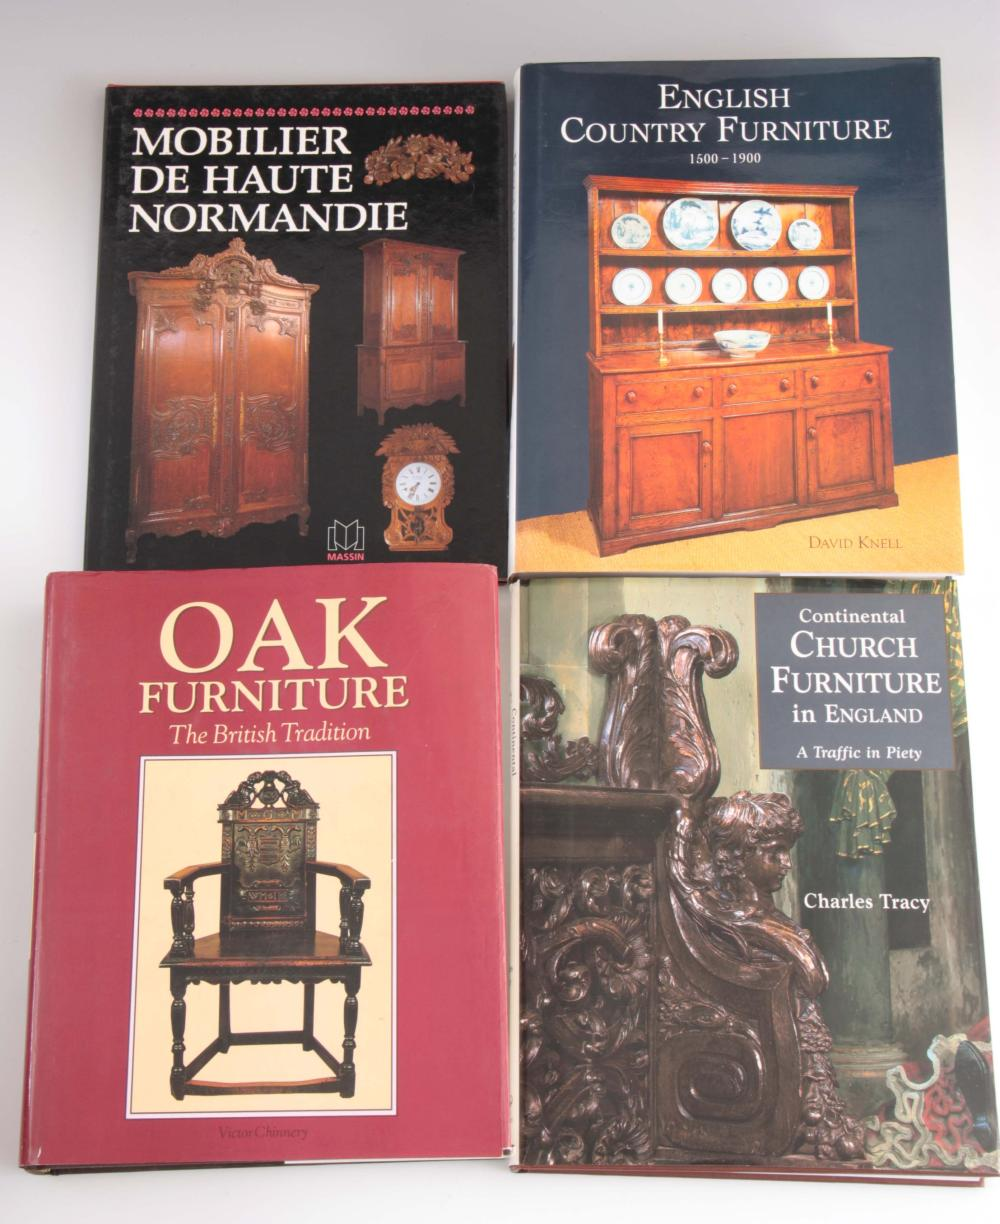 4 Books - English Country Furniture 1500 - 1900 by